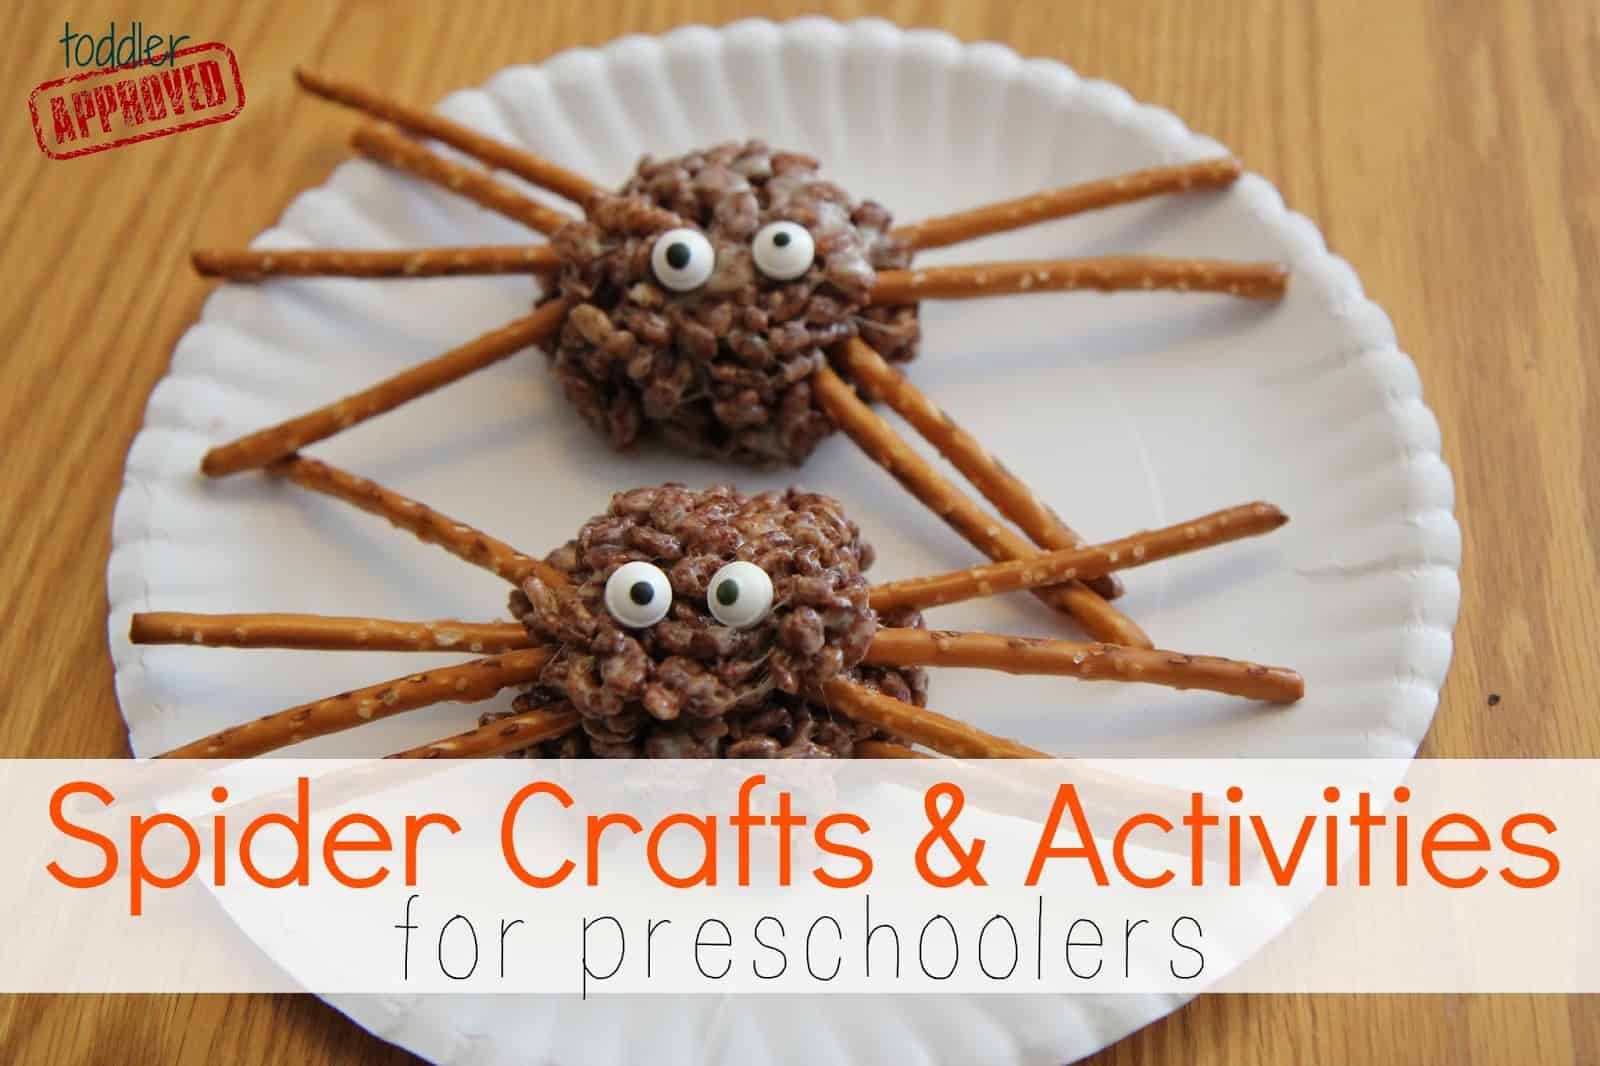 Spider rice crispy treats with pretzel legs